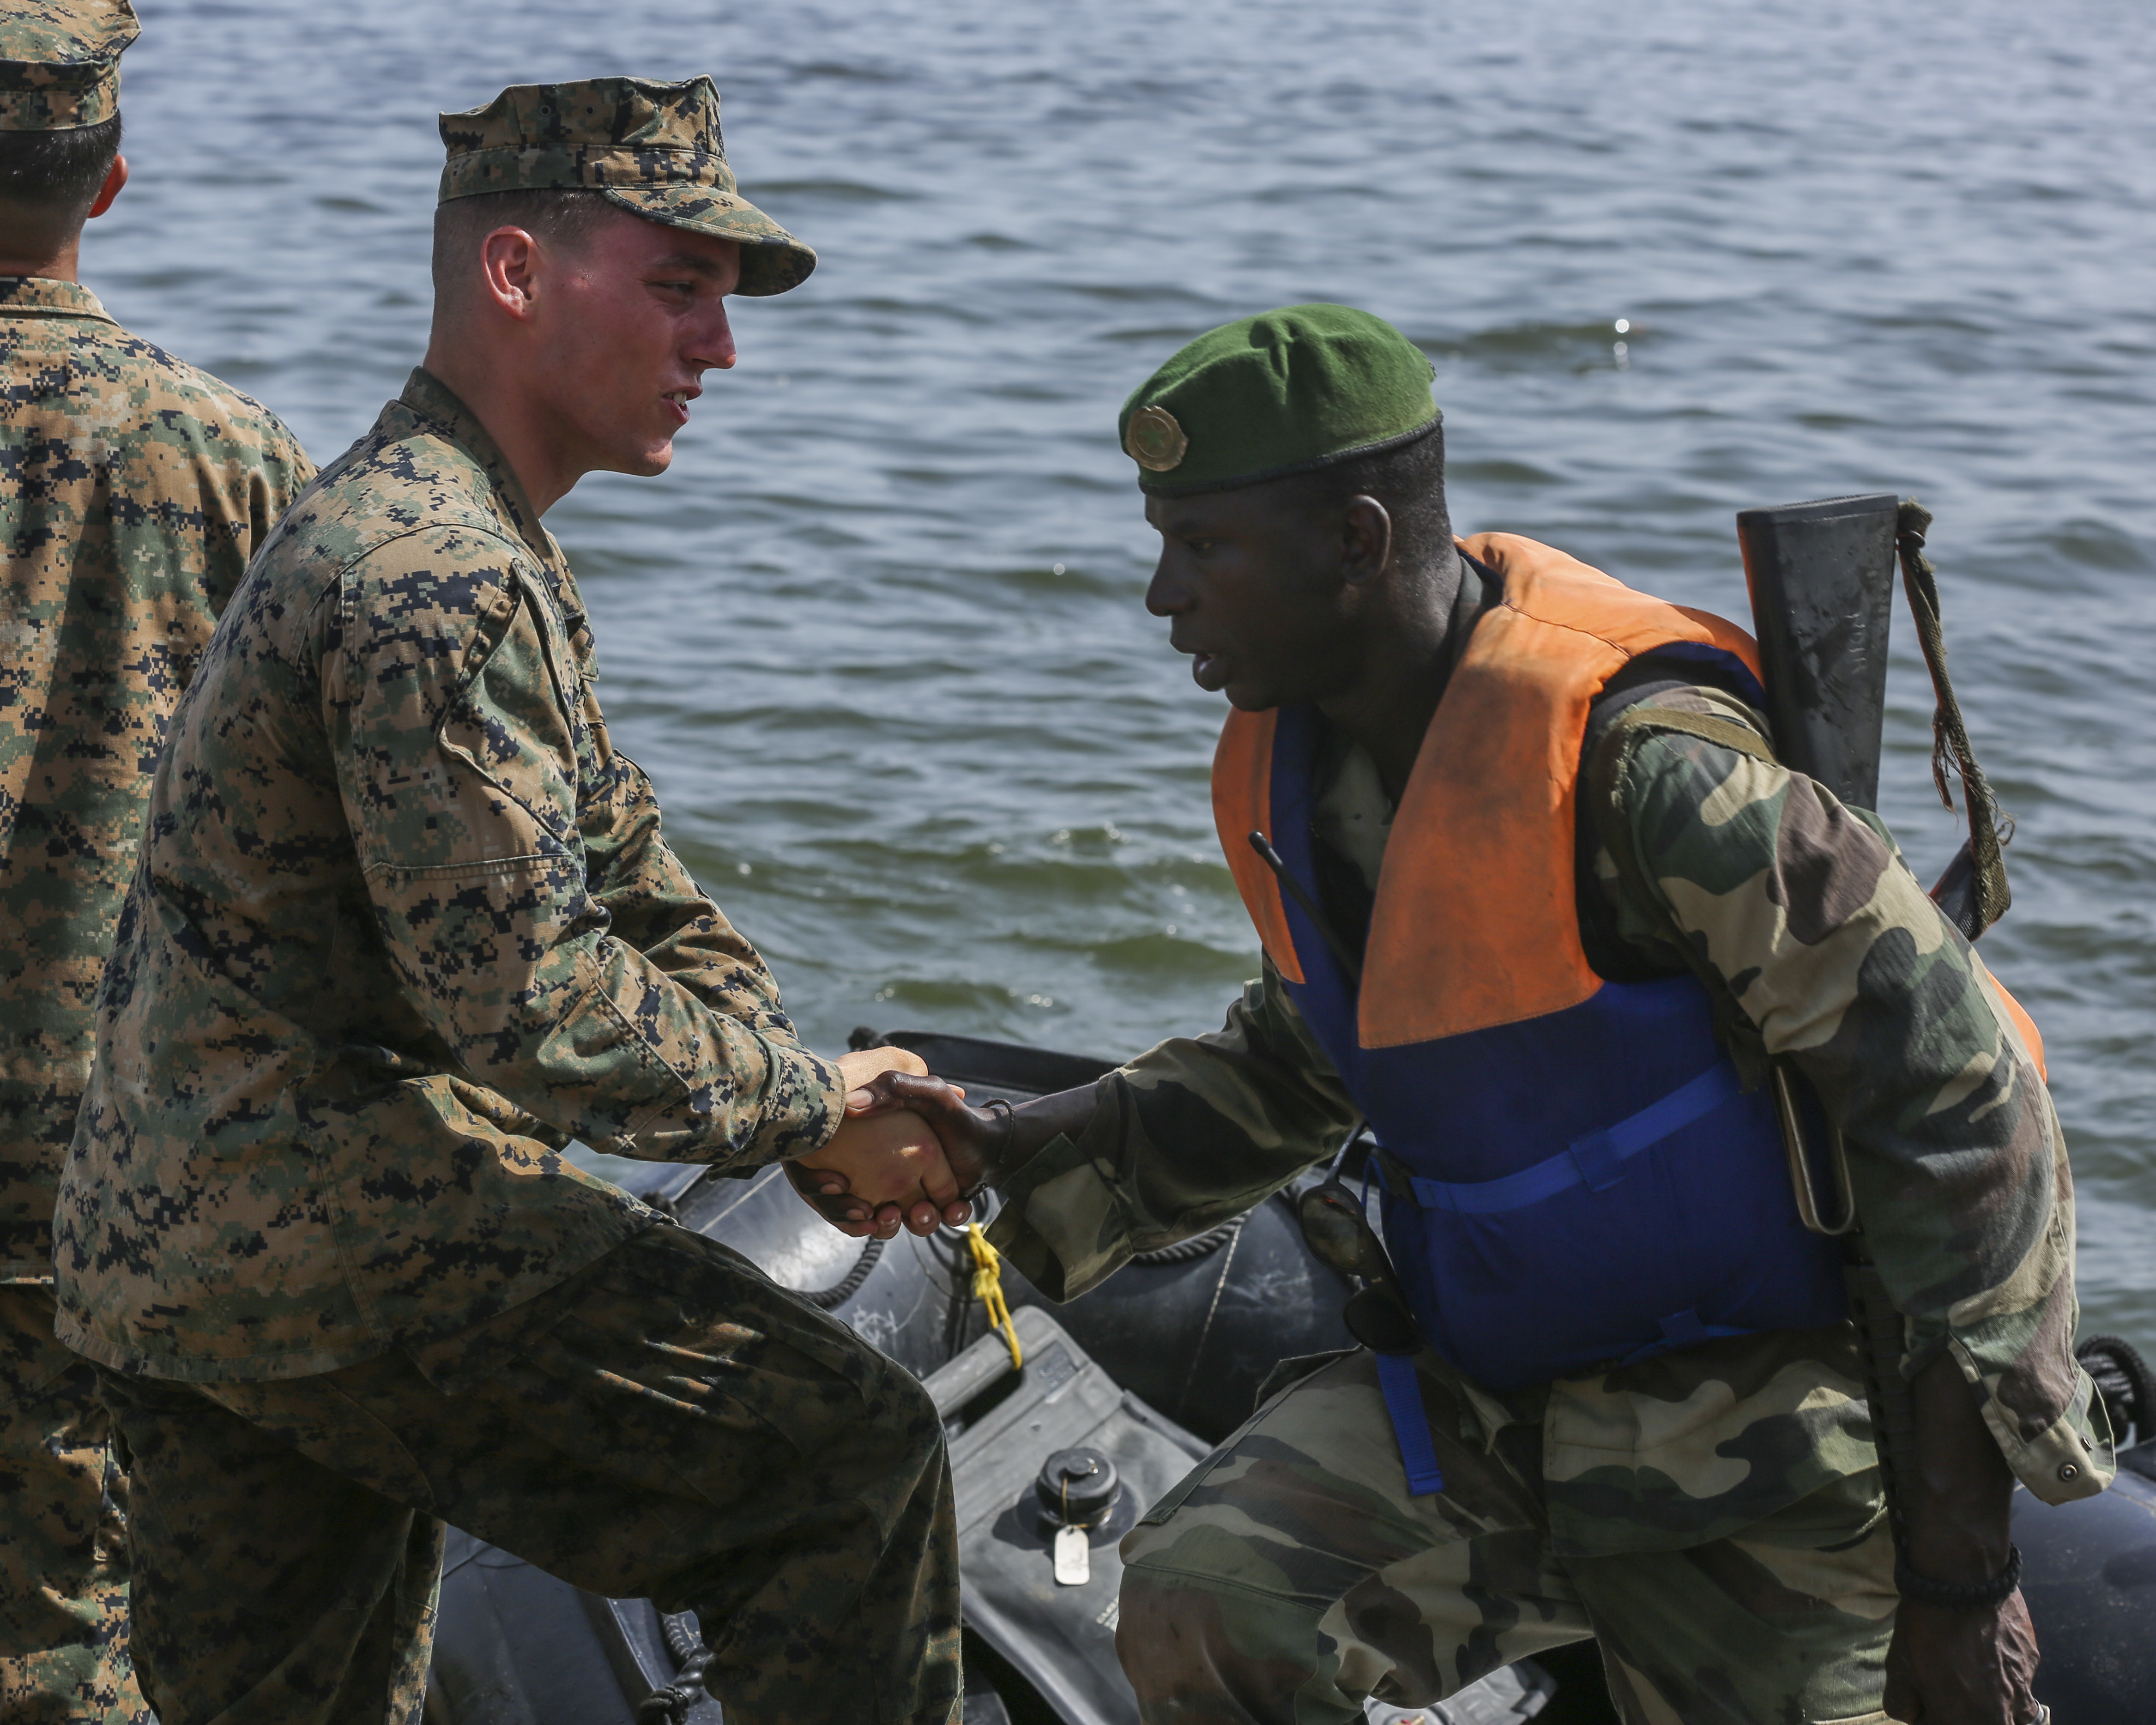 U.S. Marine Lance Cpl. Austin Carpenter, a rifleman, shakes his counterpart Compagnie Fusilier de Marin Commando's hand after successfully completing the final exercise with U.S. service members in Dakar, Senegal, Sept. 17, 2015. The Marines and Coast Guardsmen with Special-Purpose Marine Air-Ground Task Force Crisis Response-Africa spent four weeks training the COFUMACO on basic infantry tactics and small-boat operations as a part of a Maritime Security Force Assistance mission to increase interoperability with Senegal's and strengthen the bond between the partner nations. (U.S. Marine Corps photo by Cpl. Olivia McDonald/Released)